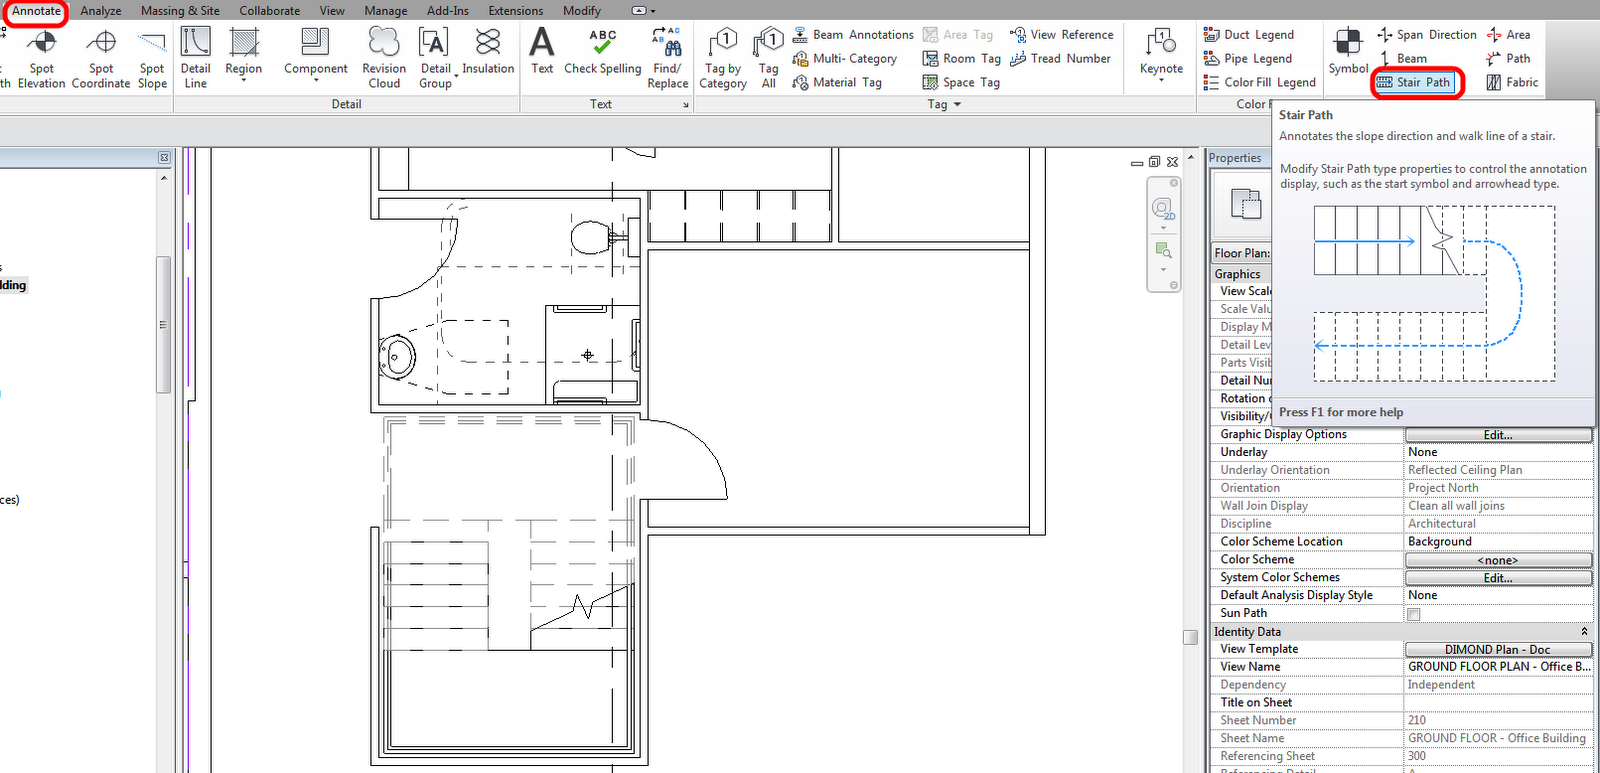 Stair path annotations in revit 2013 what revit wants in revit 2013 when using component stairs the stair path becomes a separate element think of it as a special tag for stairs pooptronica